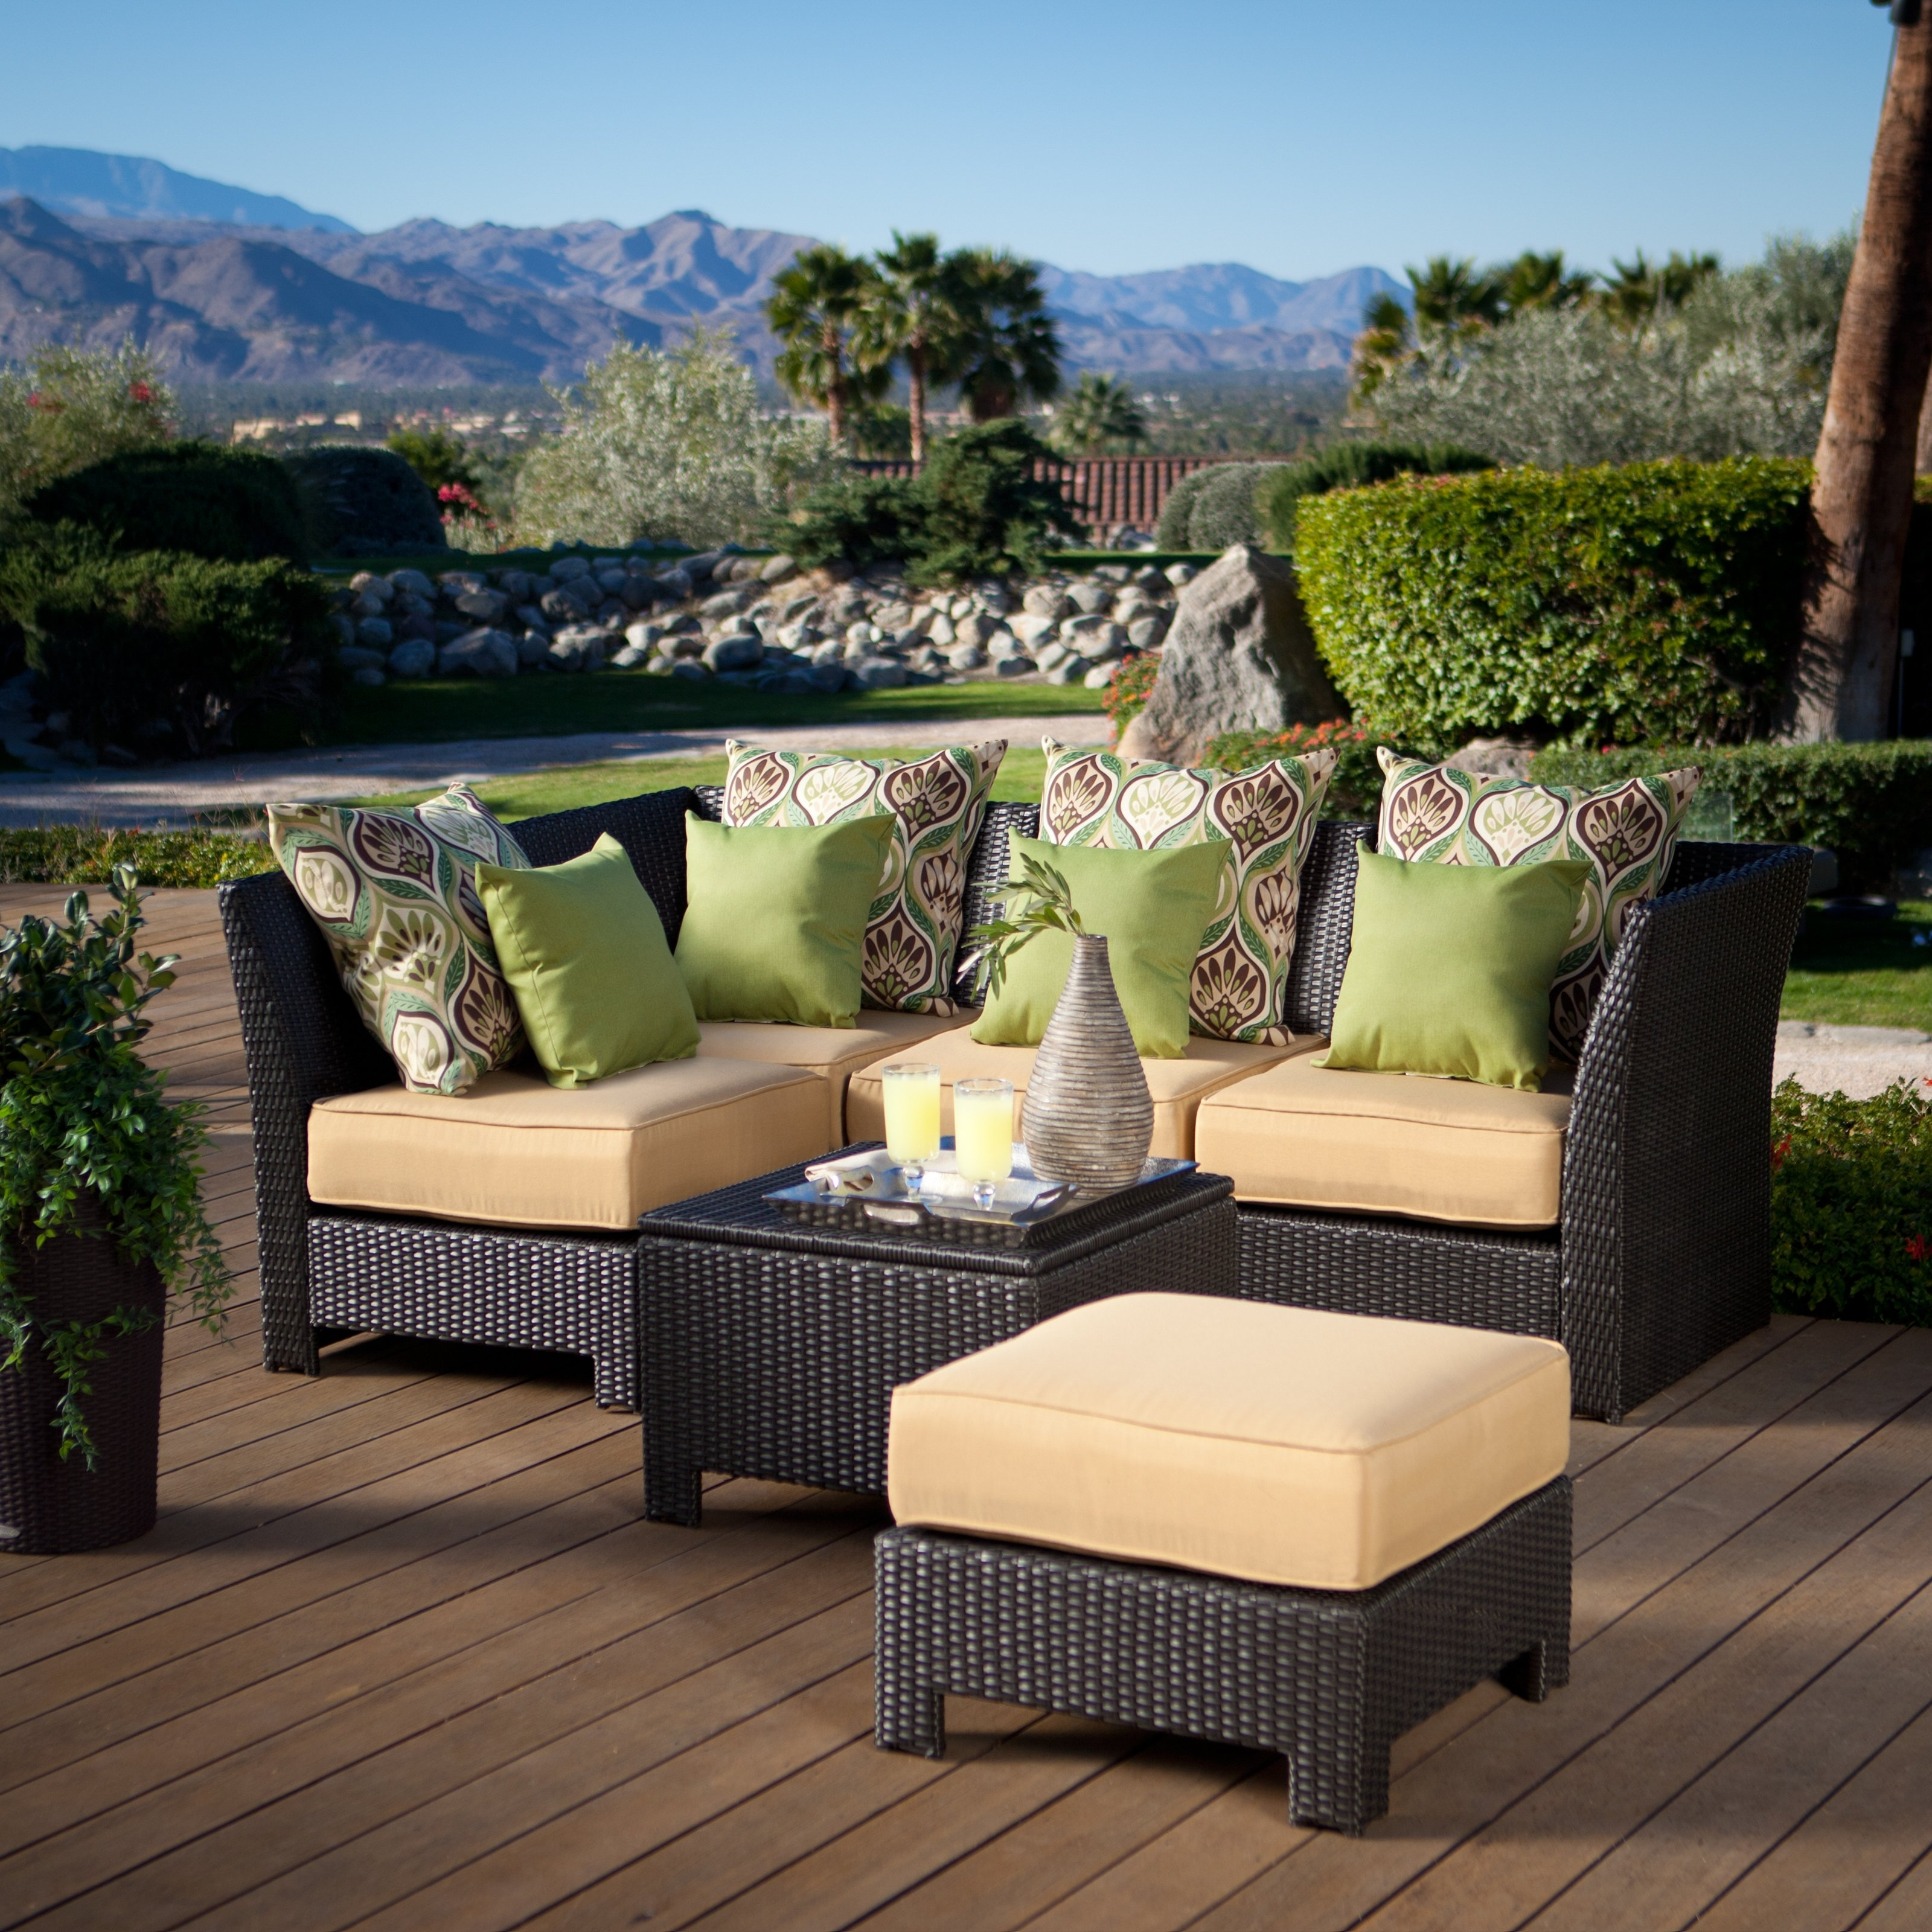 Recent Patio Conversation Sets Under $400 With Regard To Patio Conversation Sets Wicker » Design And Ideas (View 10 of 20)